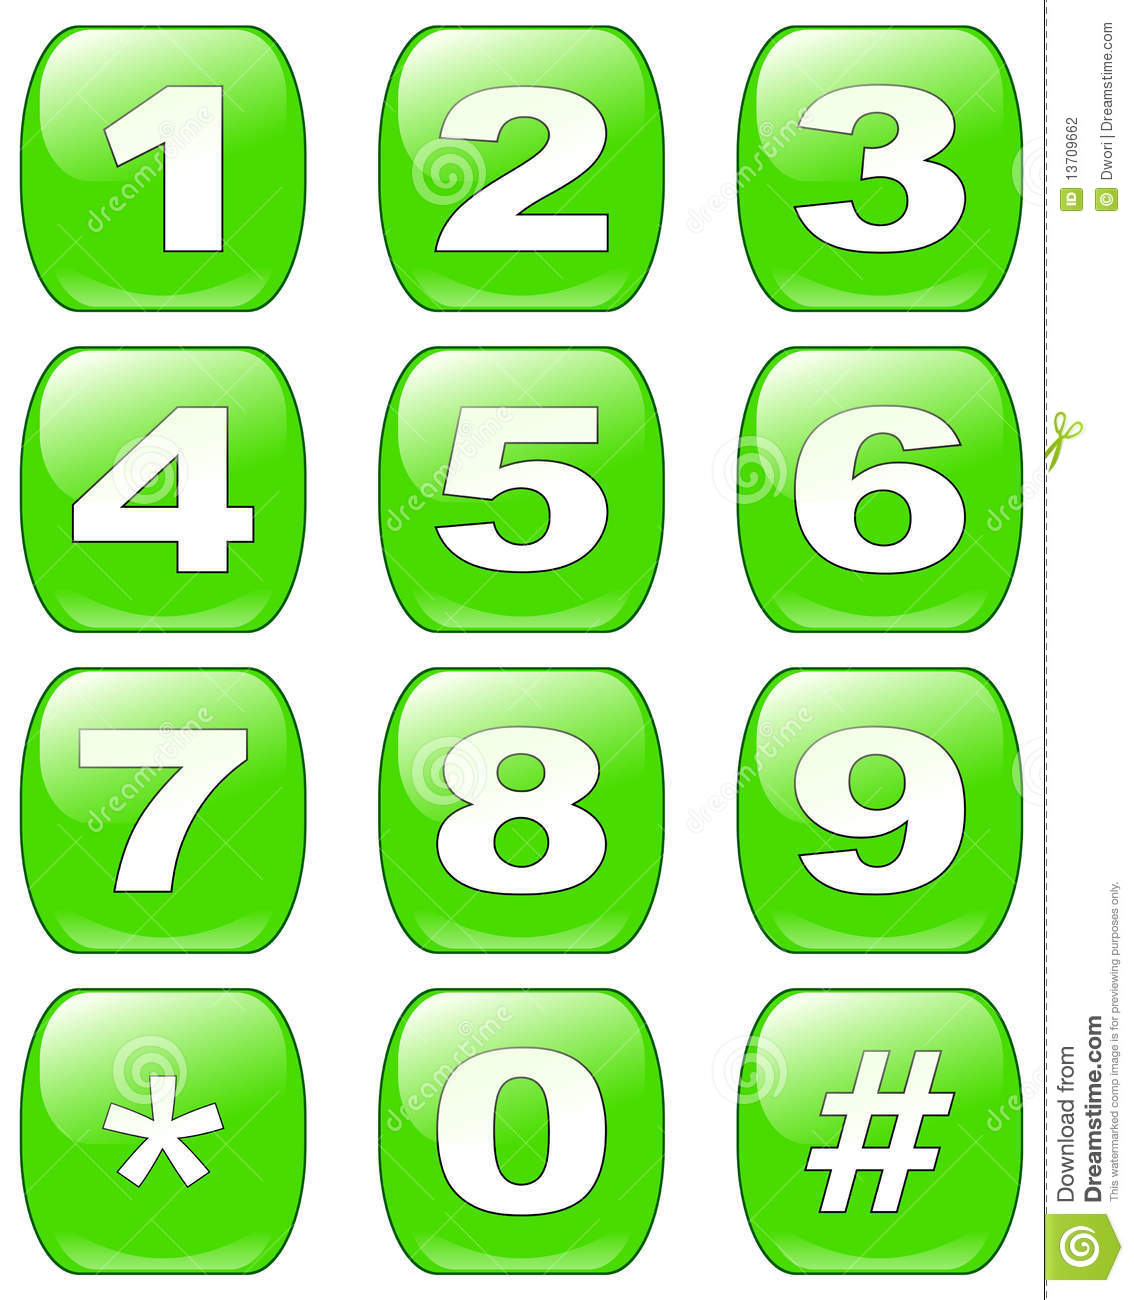 Numbers buttons stock photo. Image of business, communications ...